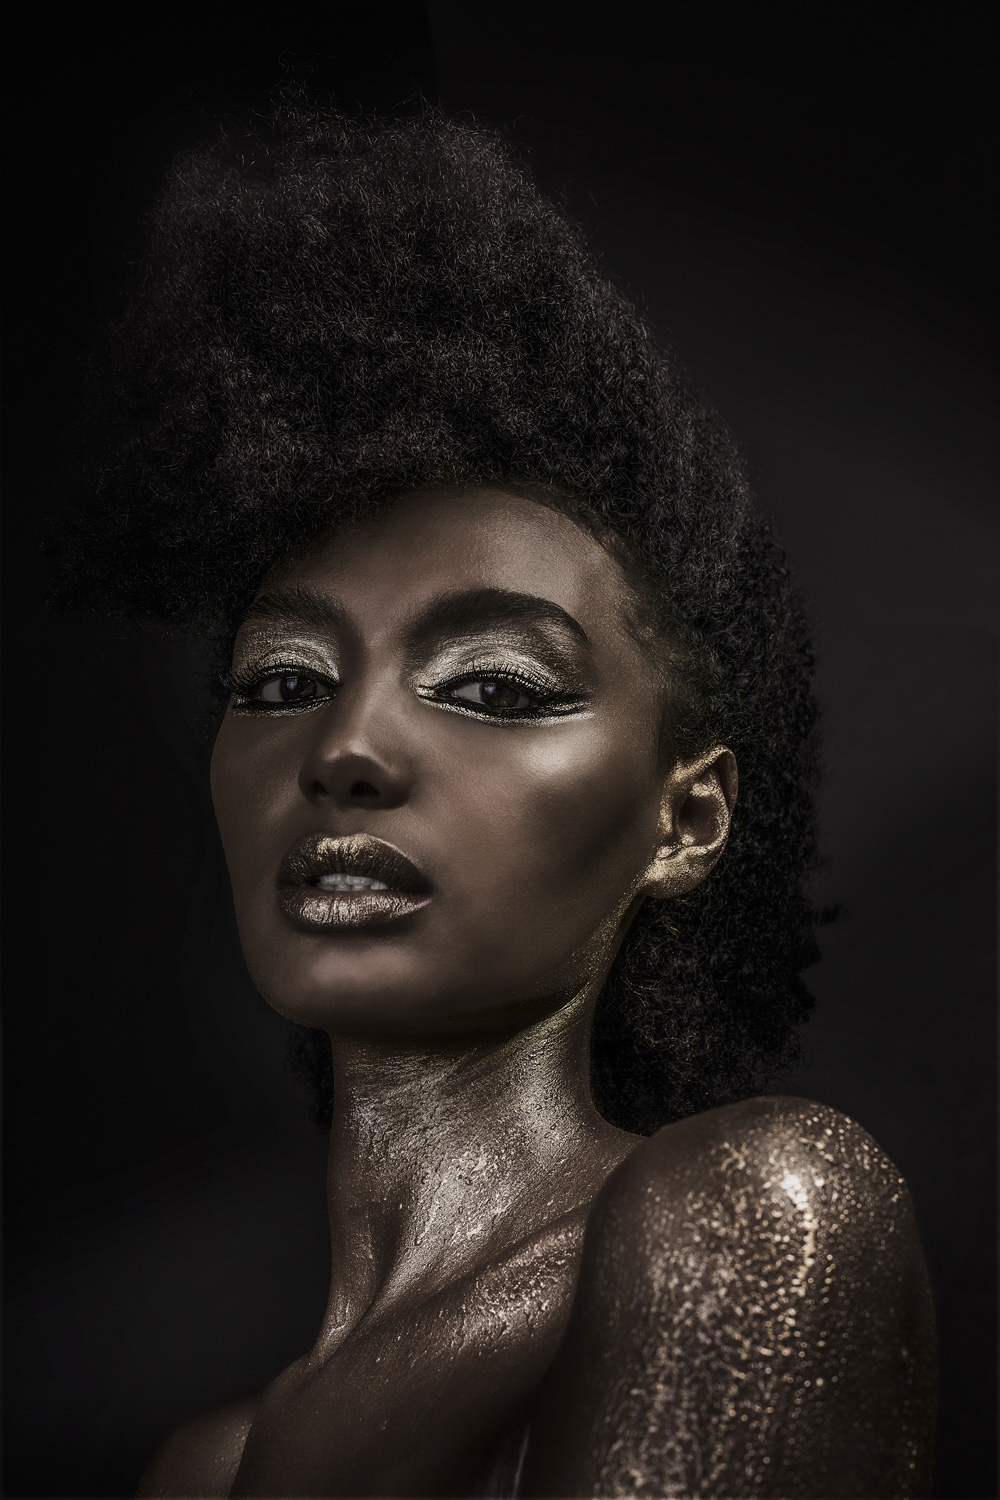 gold and black liner for Rosa Salomon top model  Bryon Bay beauty shot